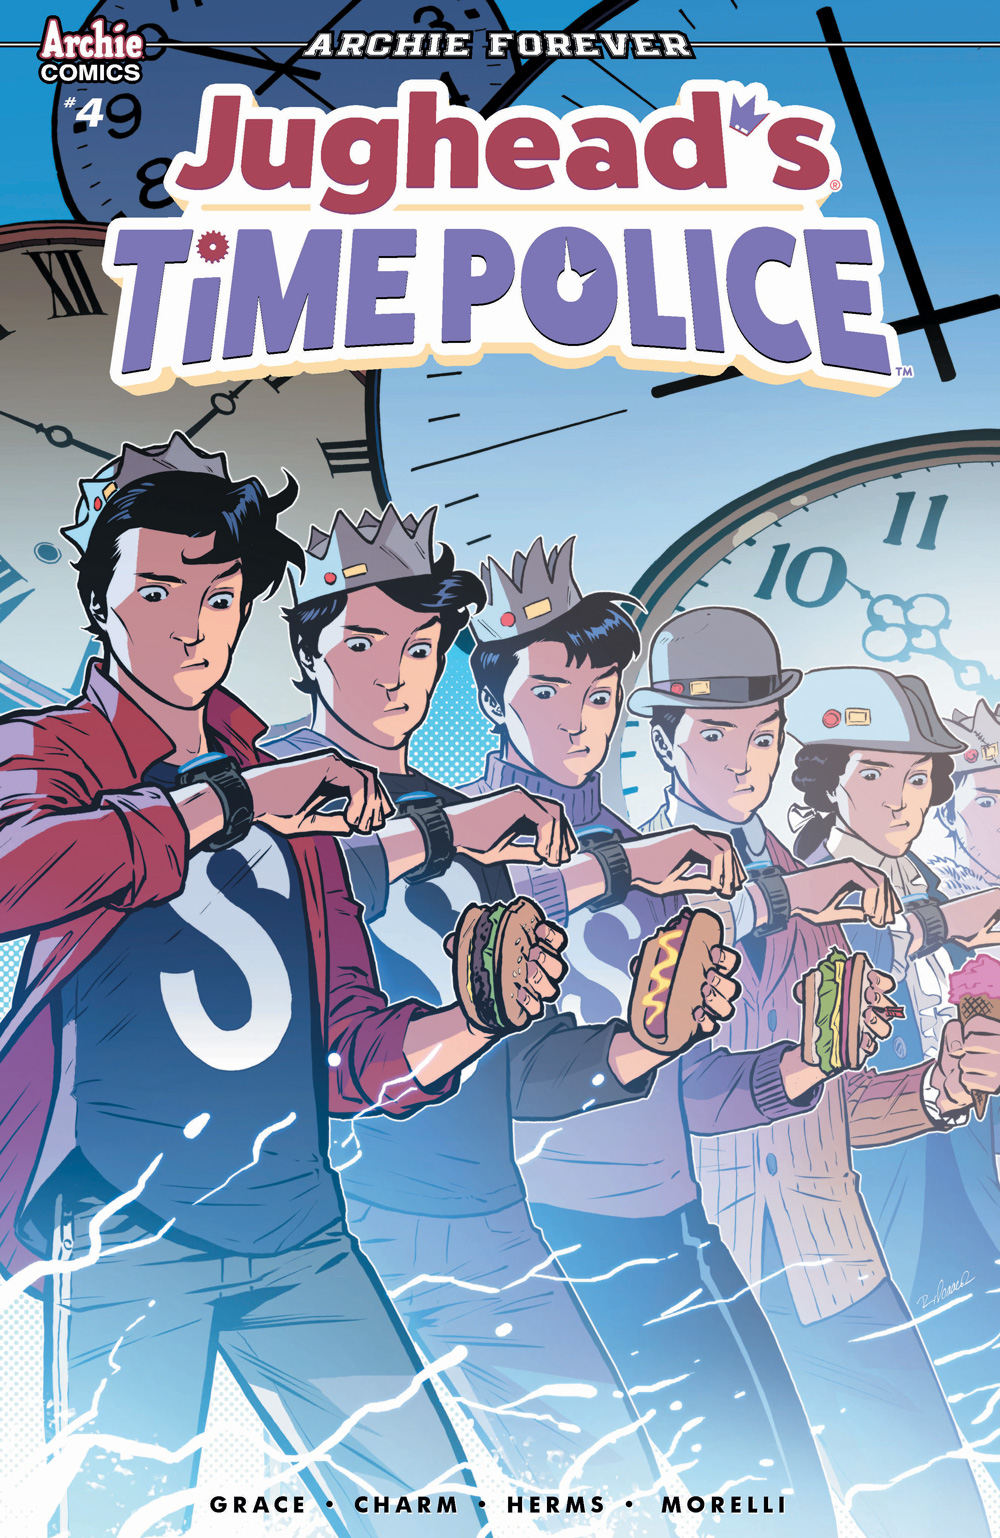 Time Police Archie Comics Cover, 2019.